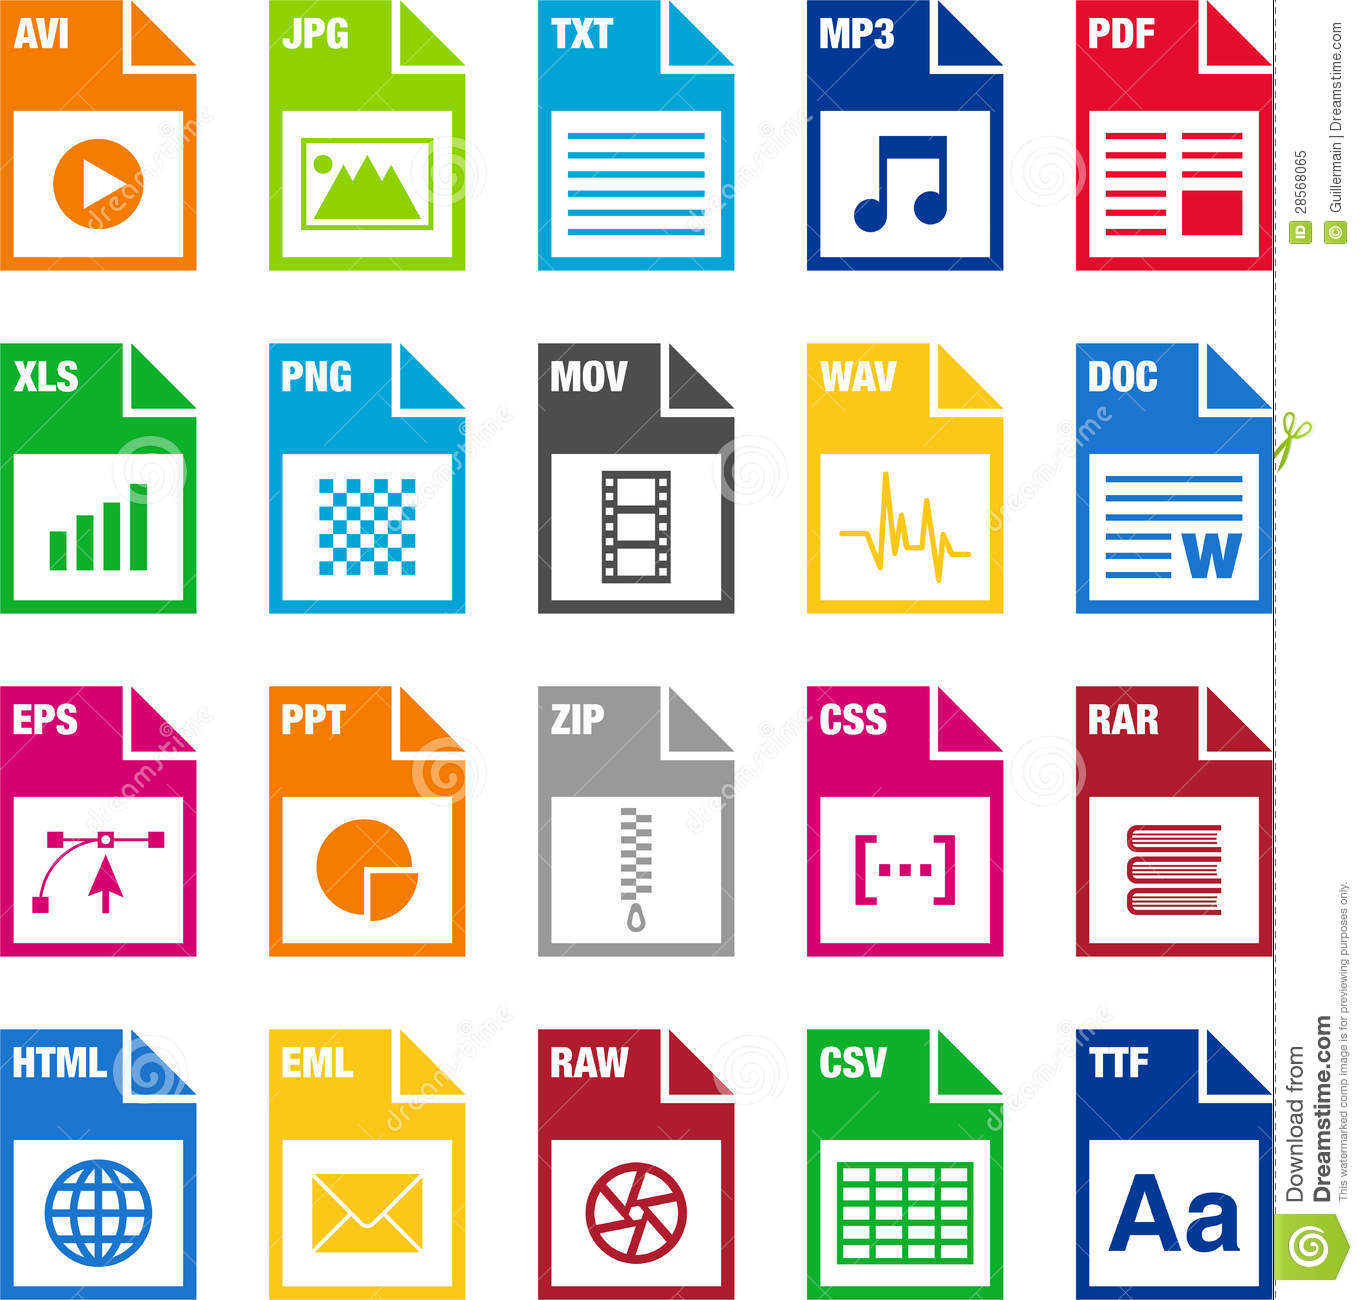 12 Icon File Format Images